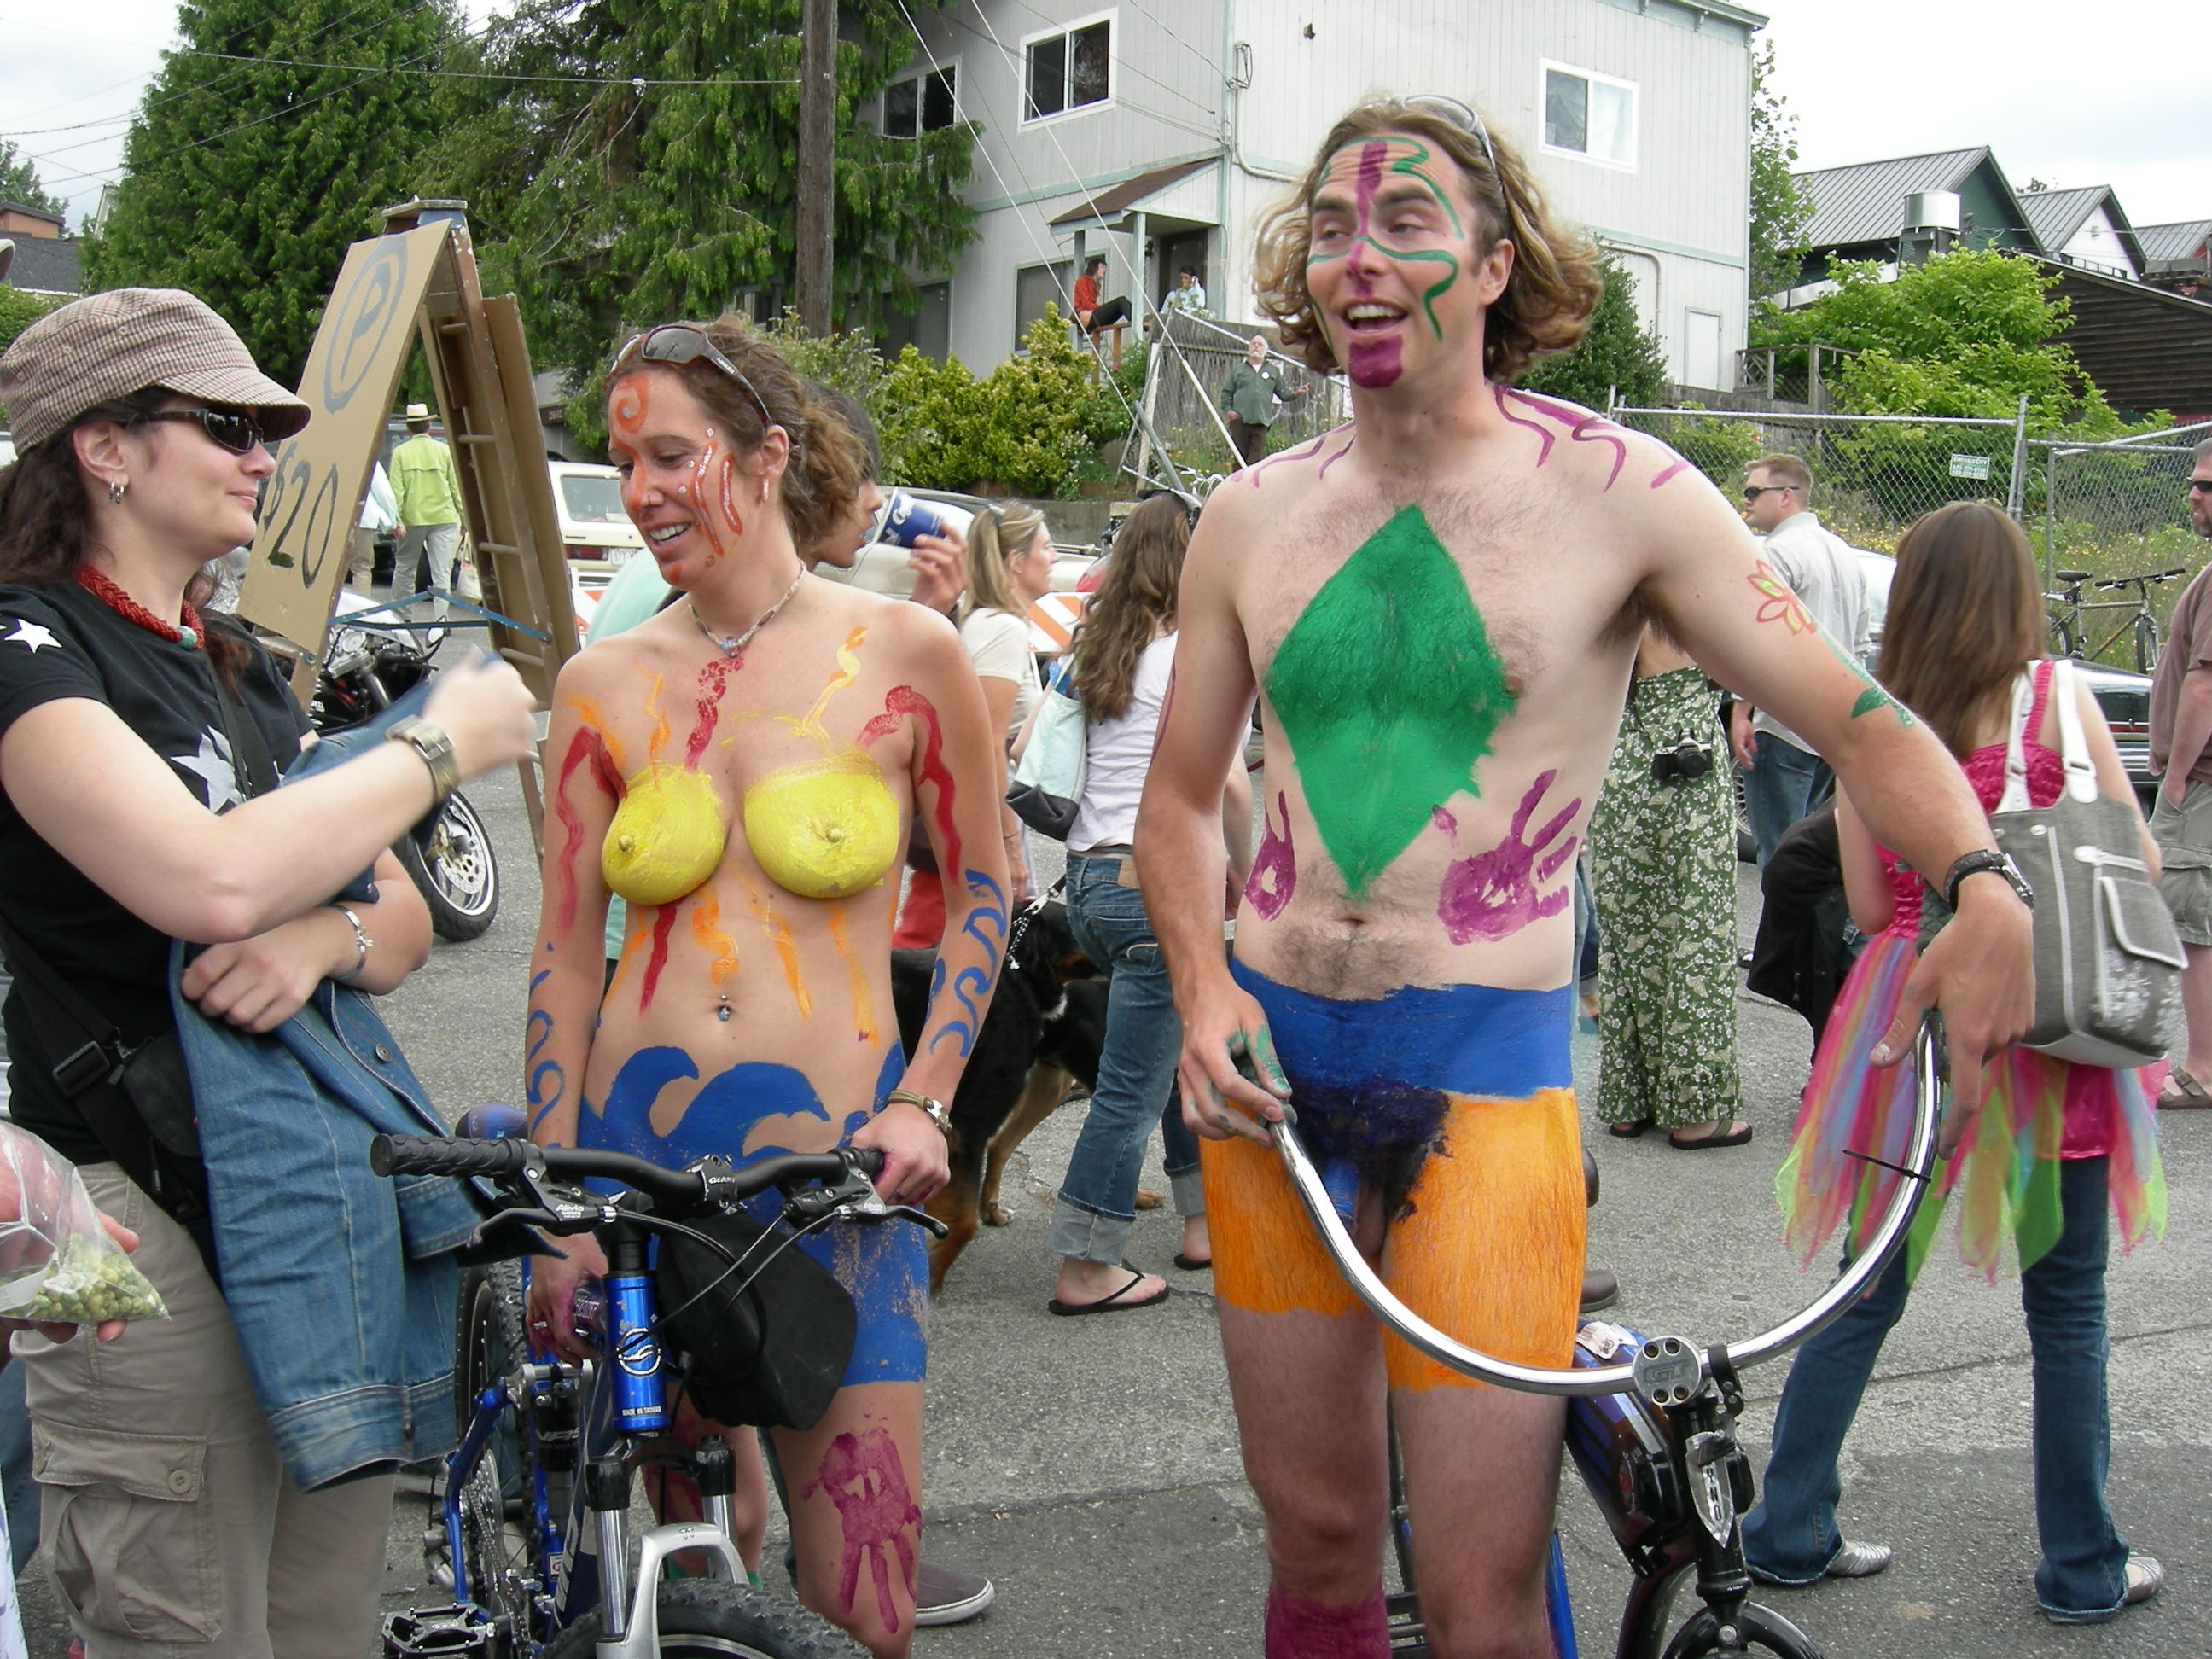 fremont nude File:Fremont naked cyclists 2007 - 60.jpg